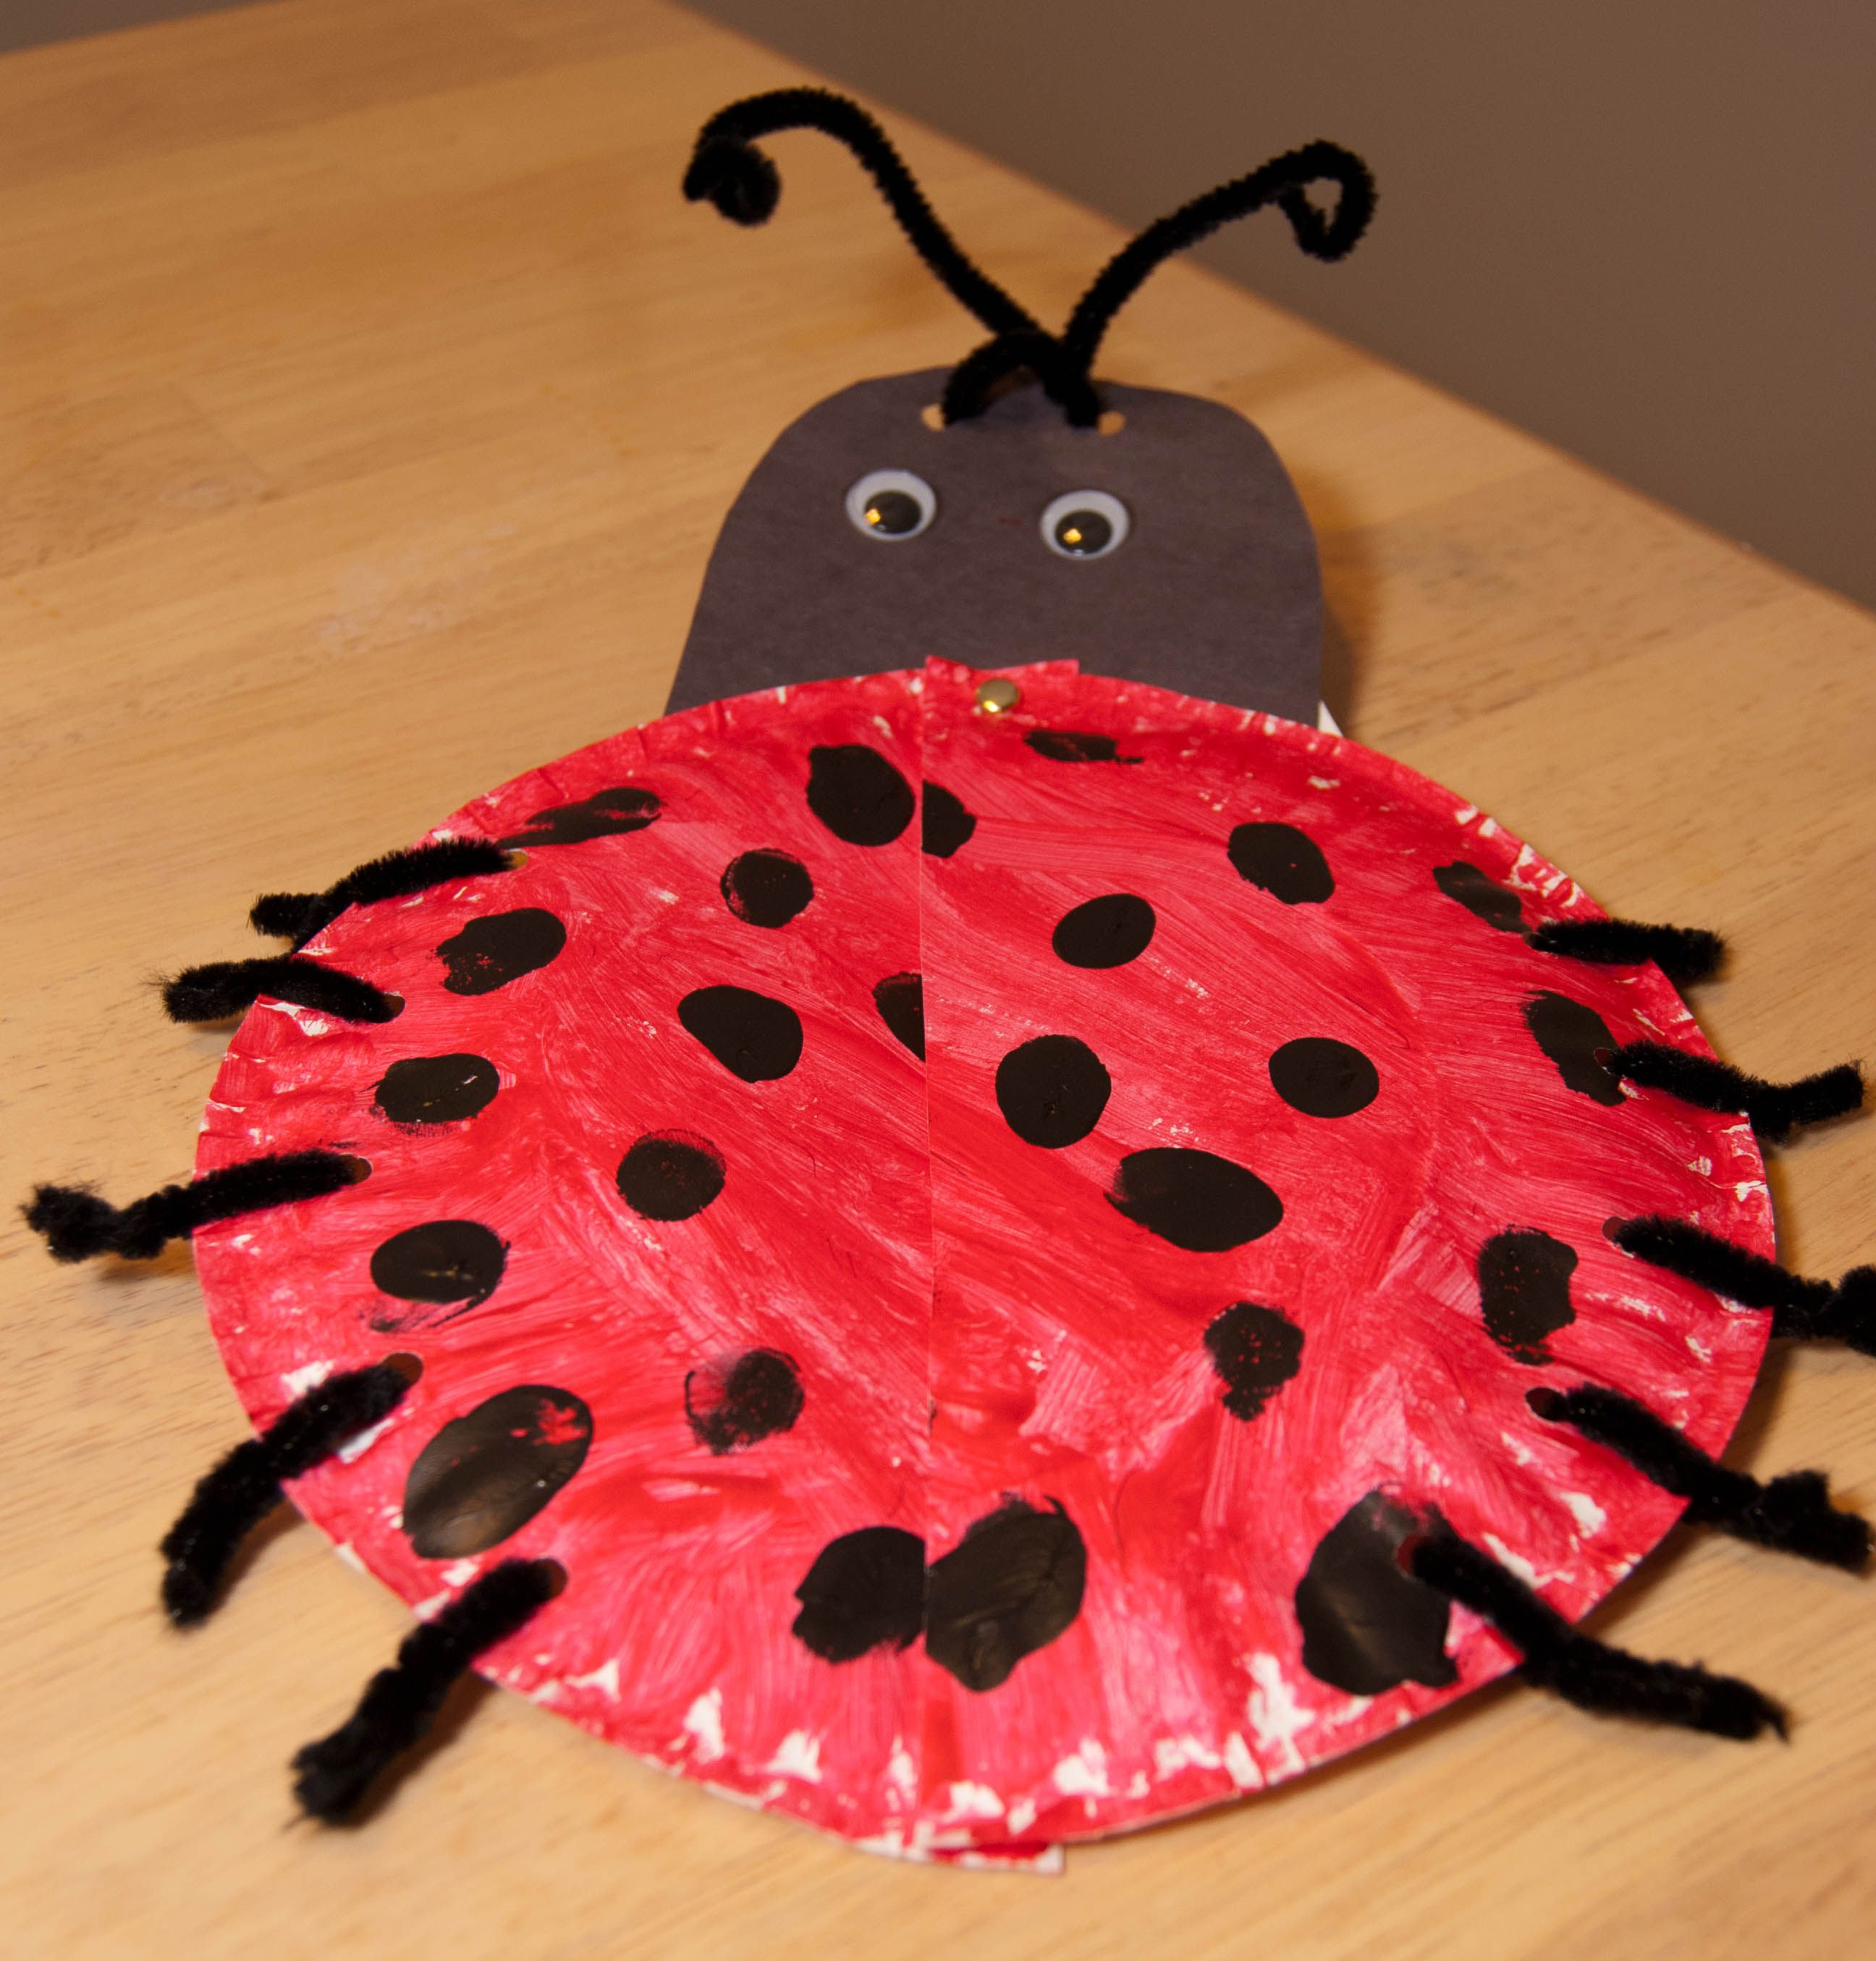 Grouchy Lady Bug Add Circle In Middle On Backside Where